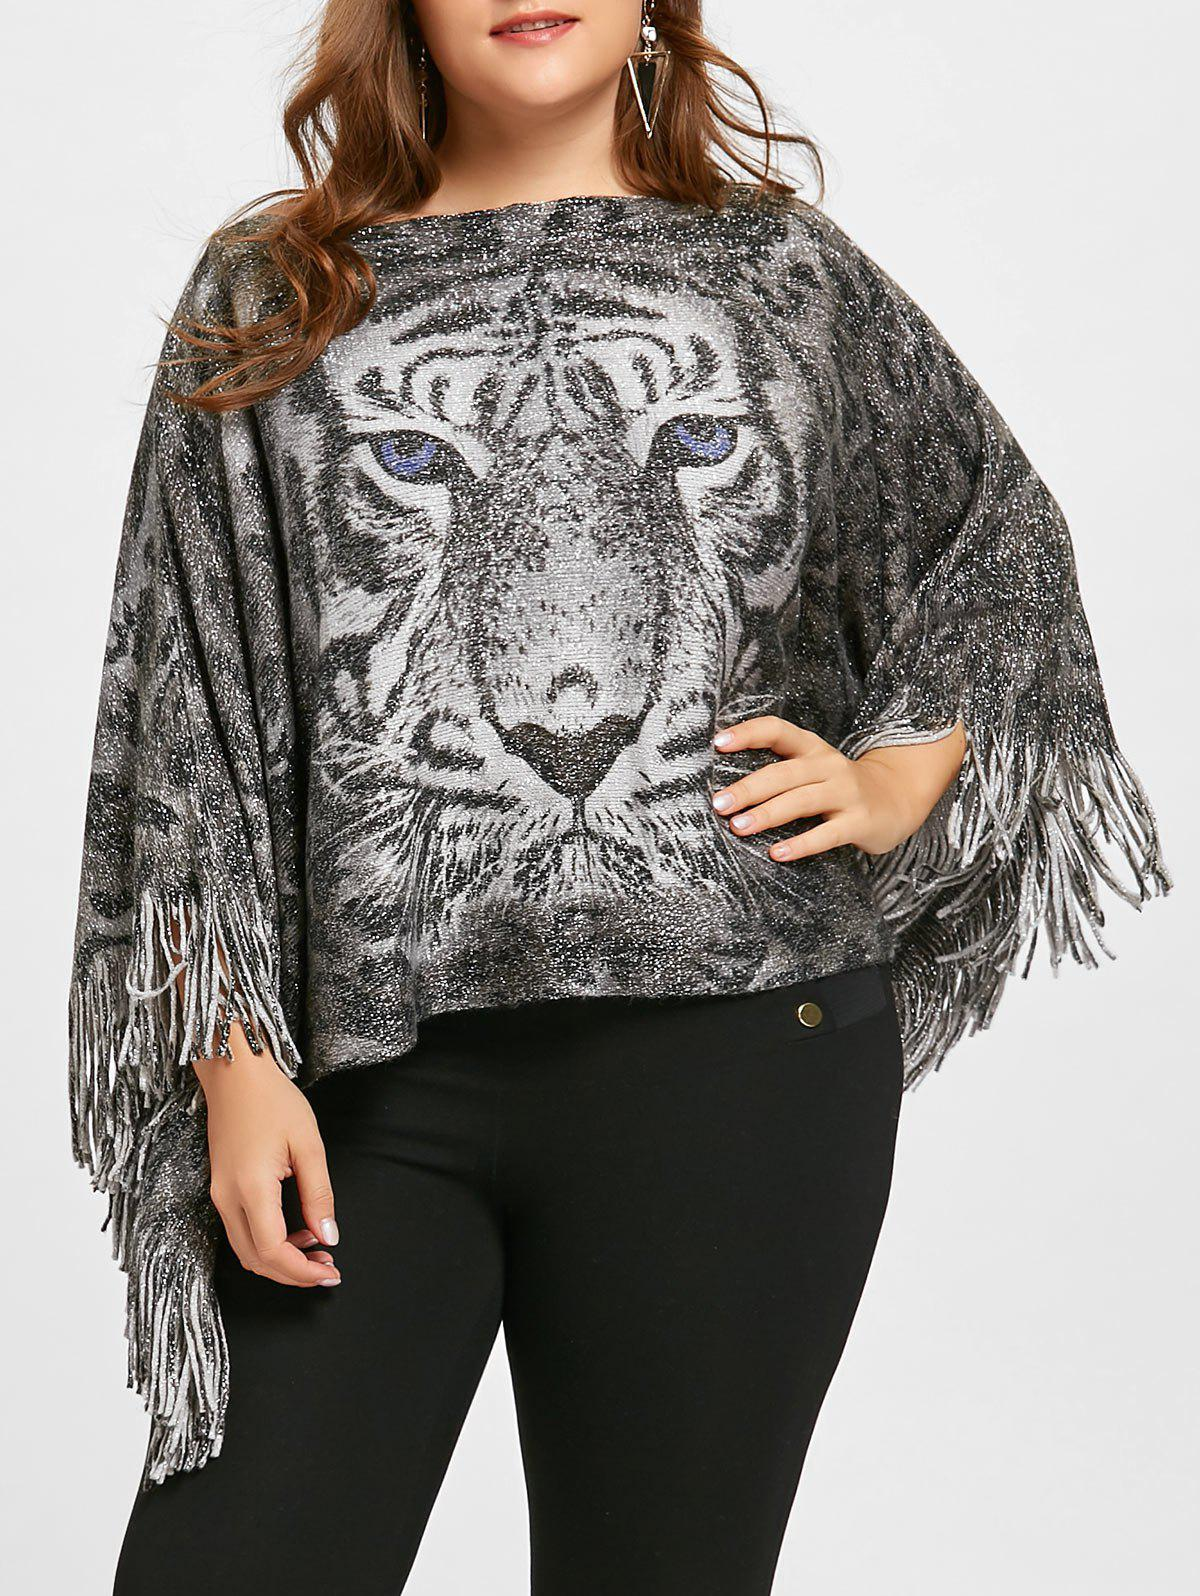 Fashion Tiger Printed Glitter Fringed Plus Size Poncho Sweater